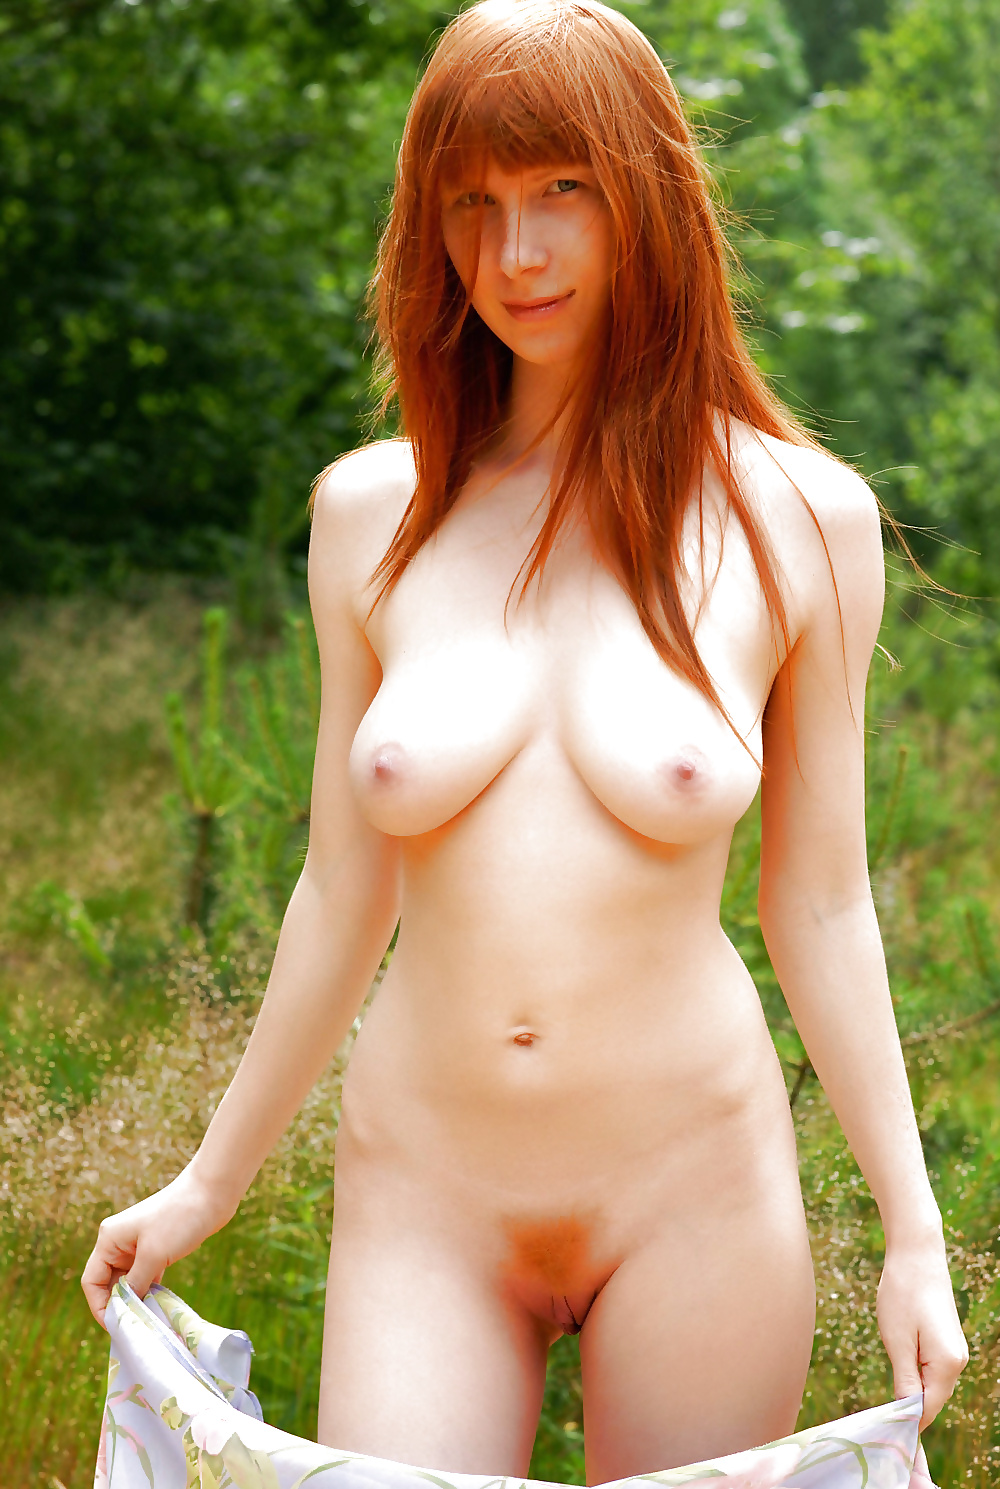 Nude pic of red hair girls, reality biker sex